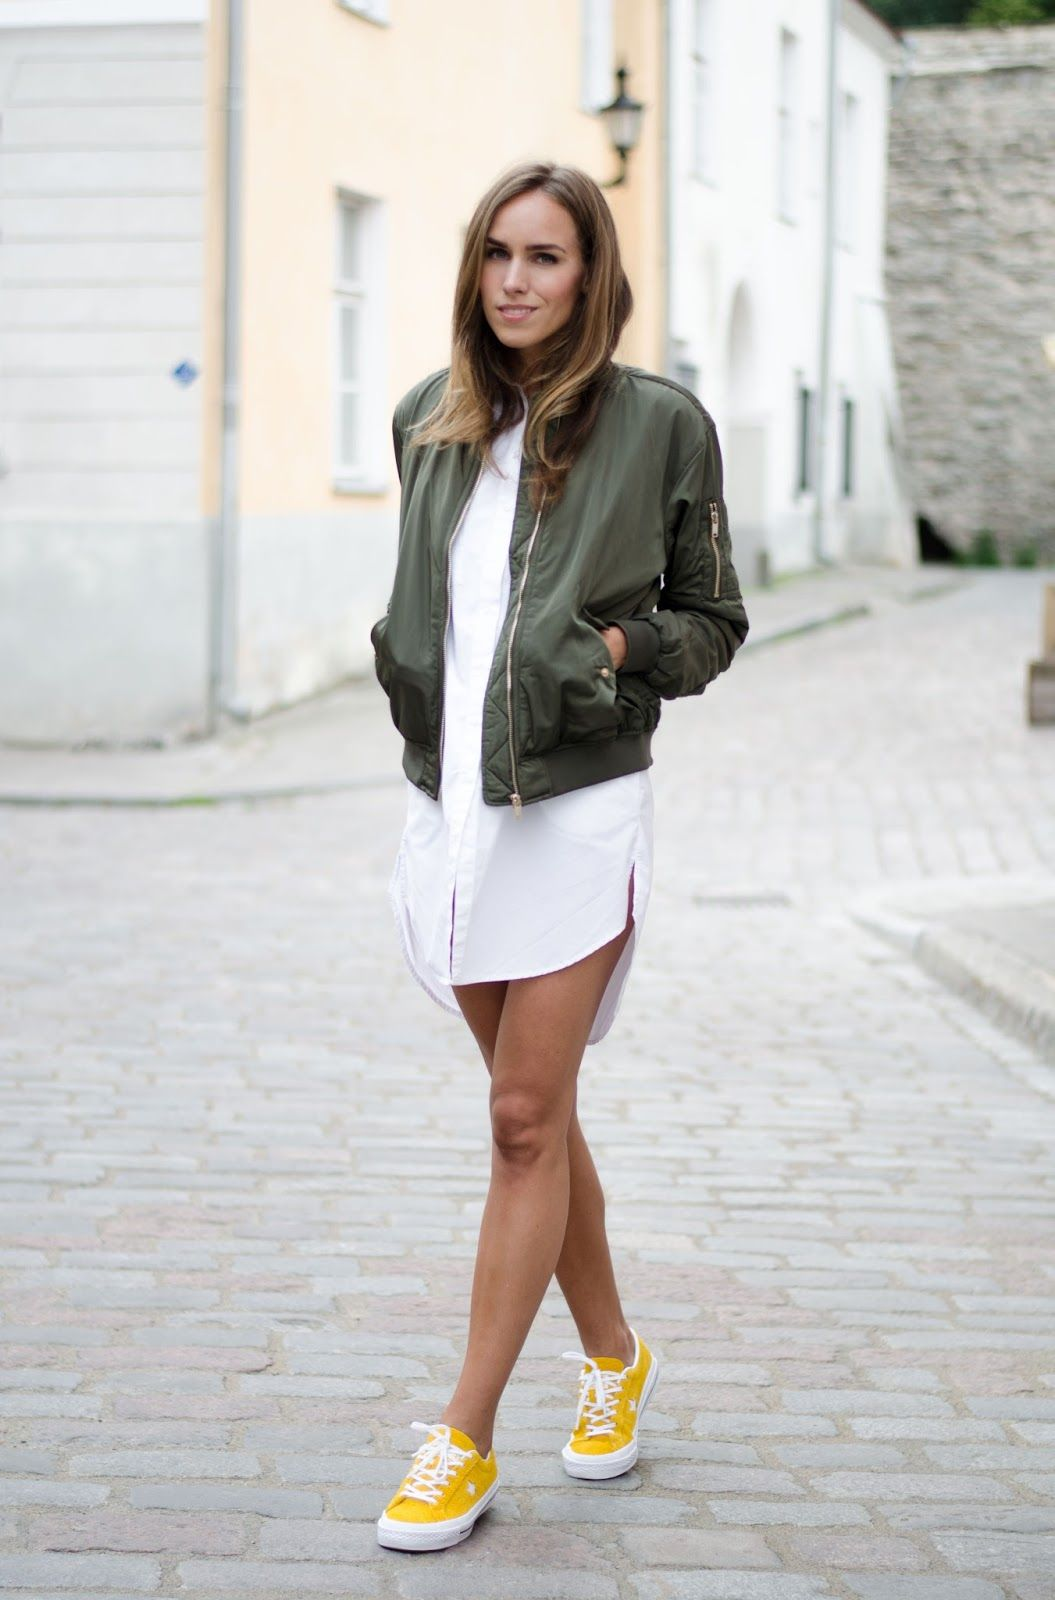 Bomber jacket shirt dress yellow sneakers outfit outfits